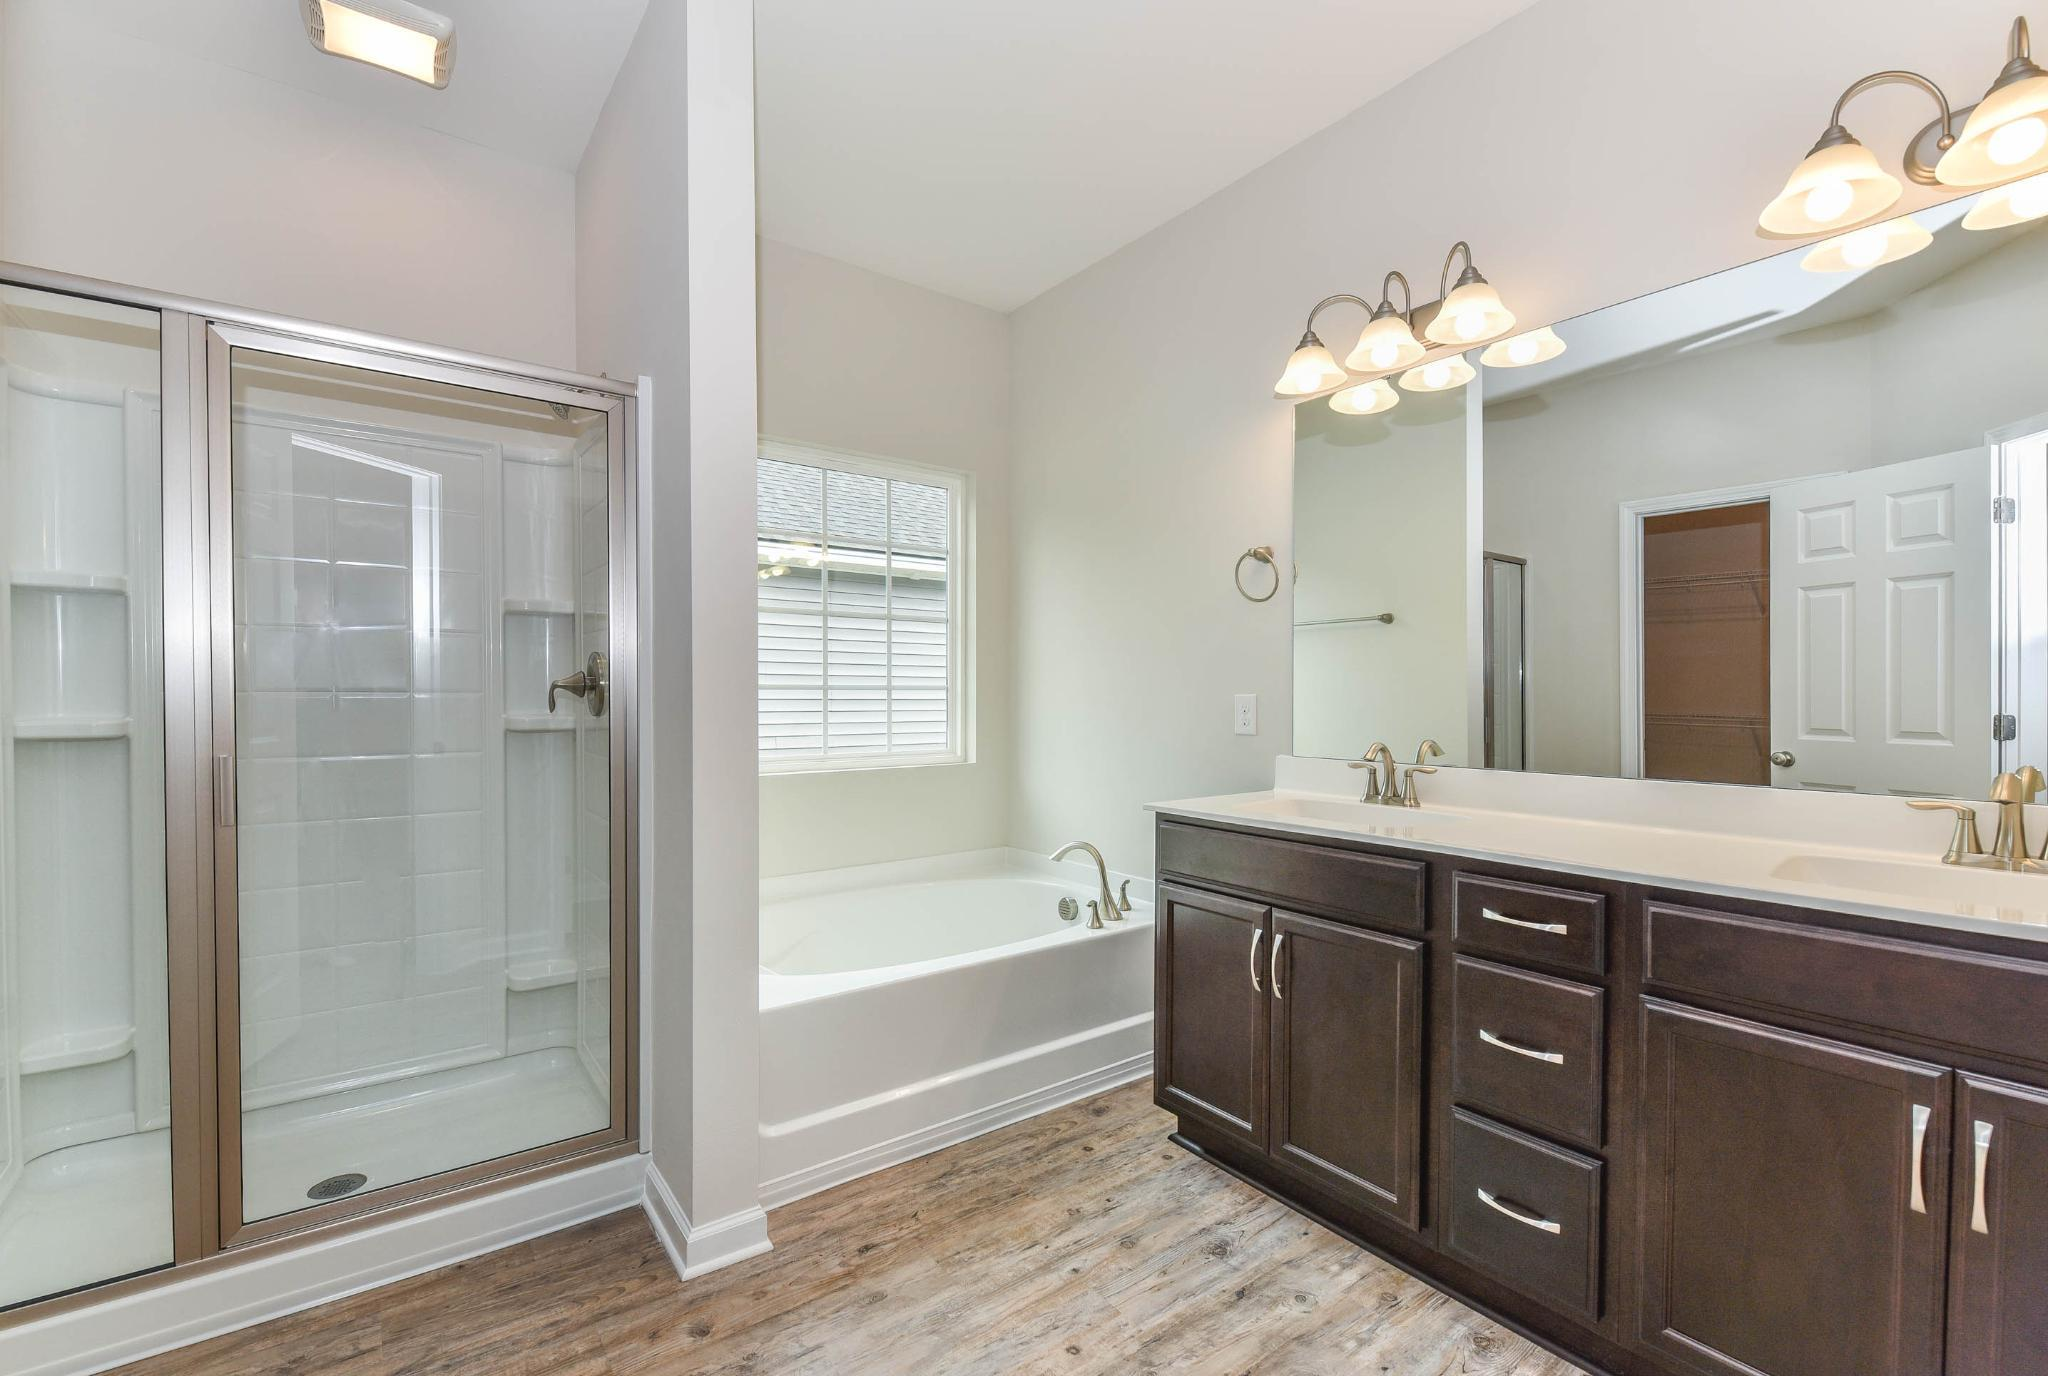 Bathroom featured in the Wassaw By Ernest Homes in Savannah, GA